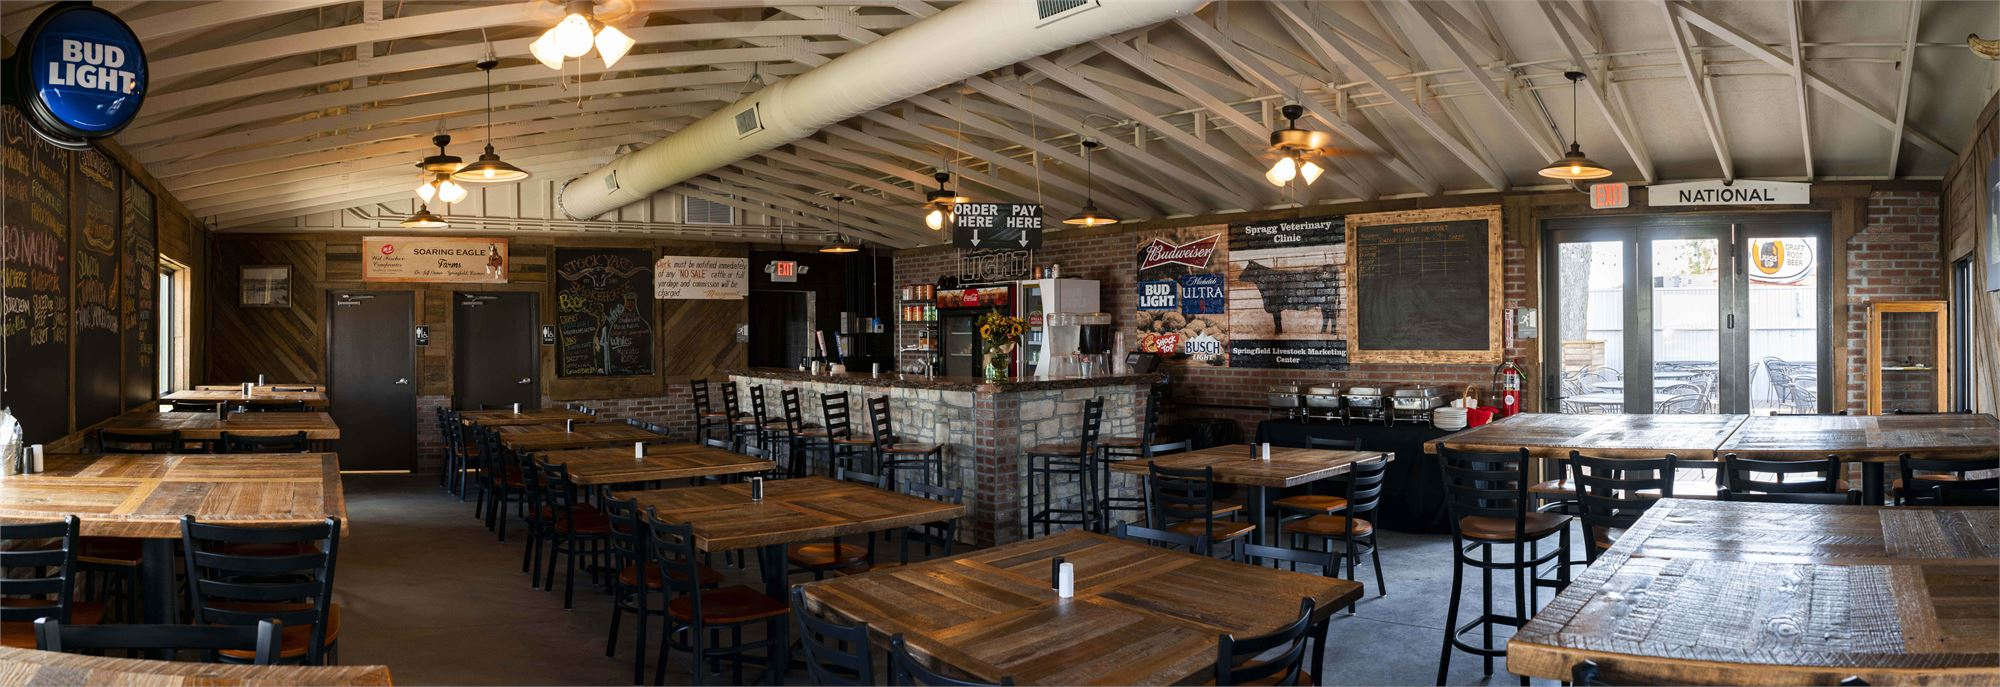 Inside Stockyard Smokehouse. Several wood tables are set up with memorabilia on the walls from the old Stockyards. The ceilings are white with wood walls and chalkboards.